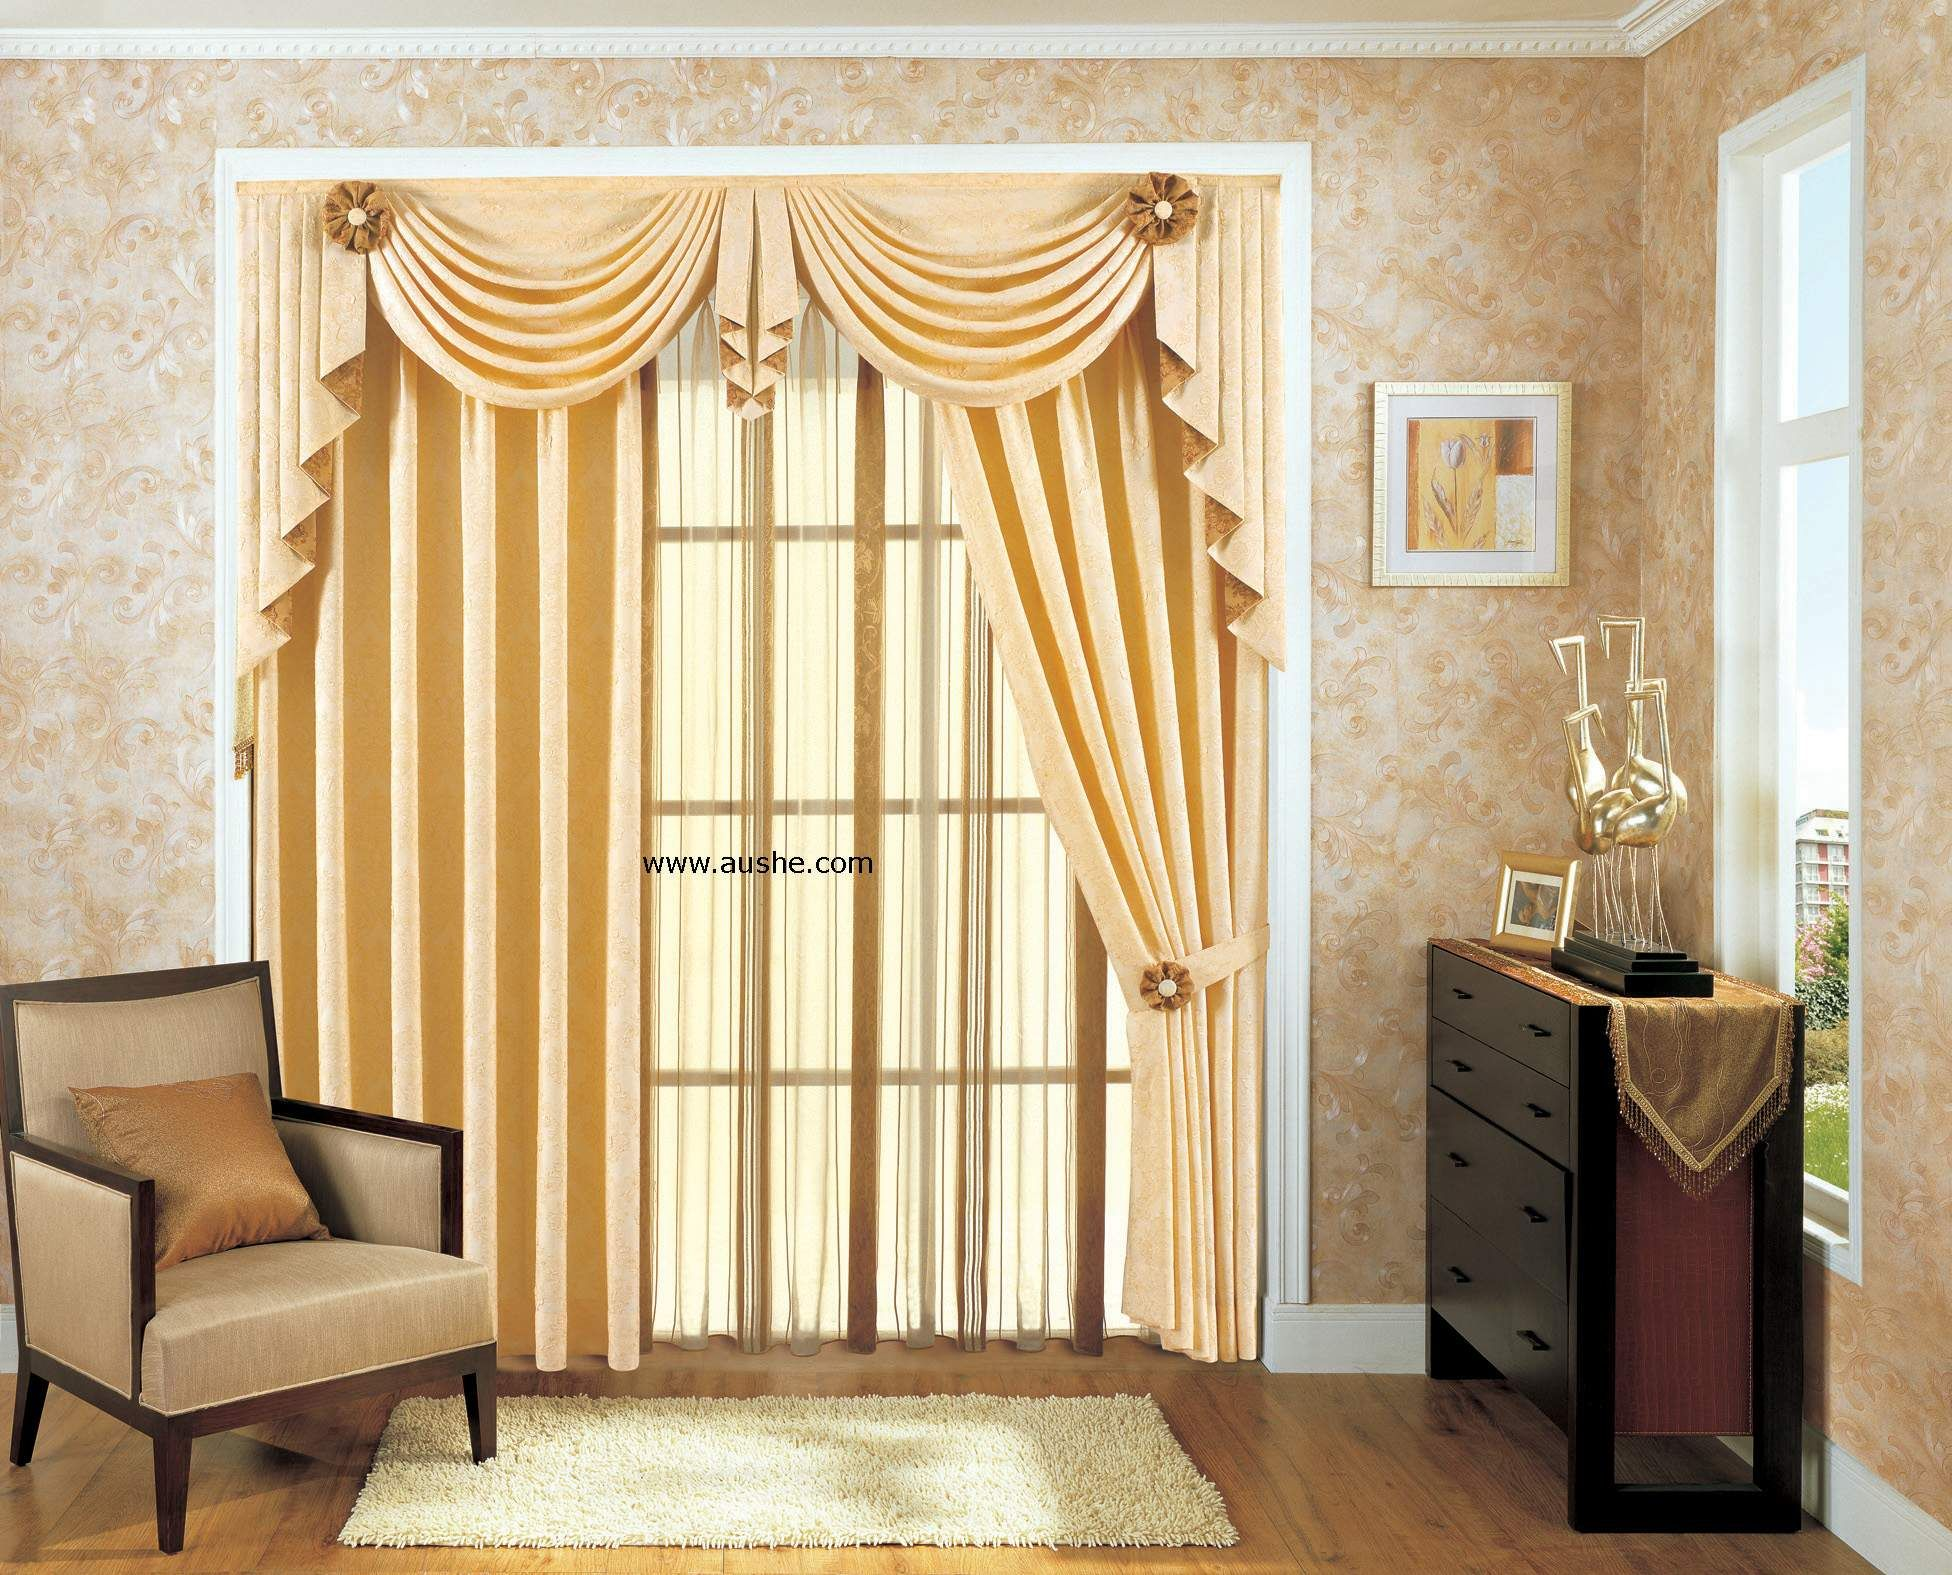 Inside house windows with curtains - Find This Pin And More On Wonderful Window Treatments Interior Design Beautiful Window Modern Curtain